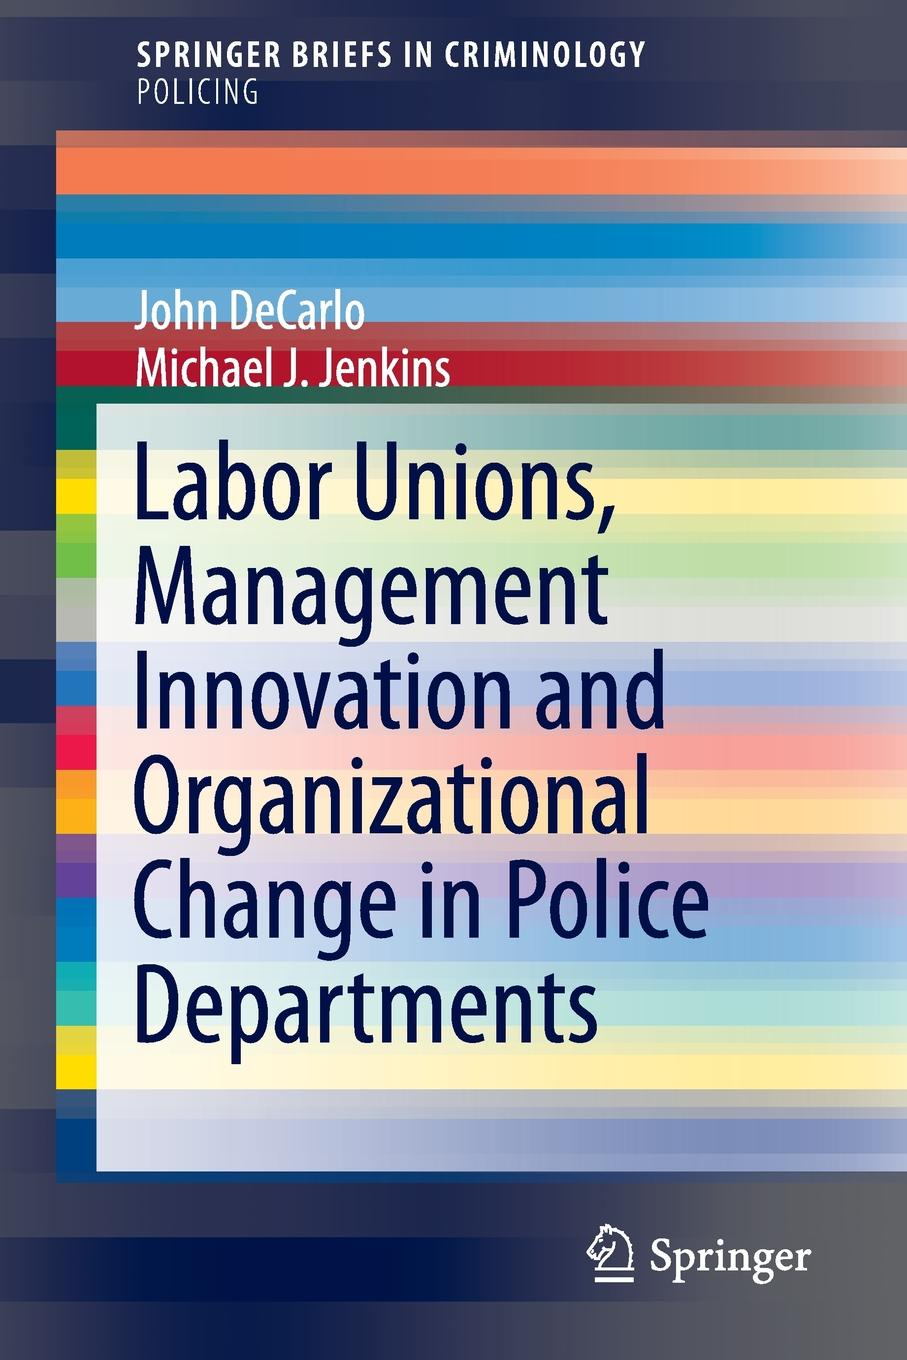 John DeCarlo, Michael J. Jenkins Labor Unions, Management Innovation and Organizational Change in Police Departments j f donnelly james dsw donnelly edgar w jenkins science education policy professionalism and change